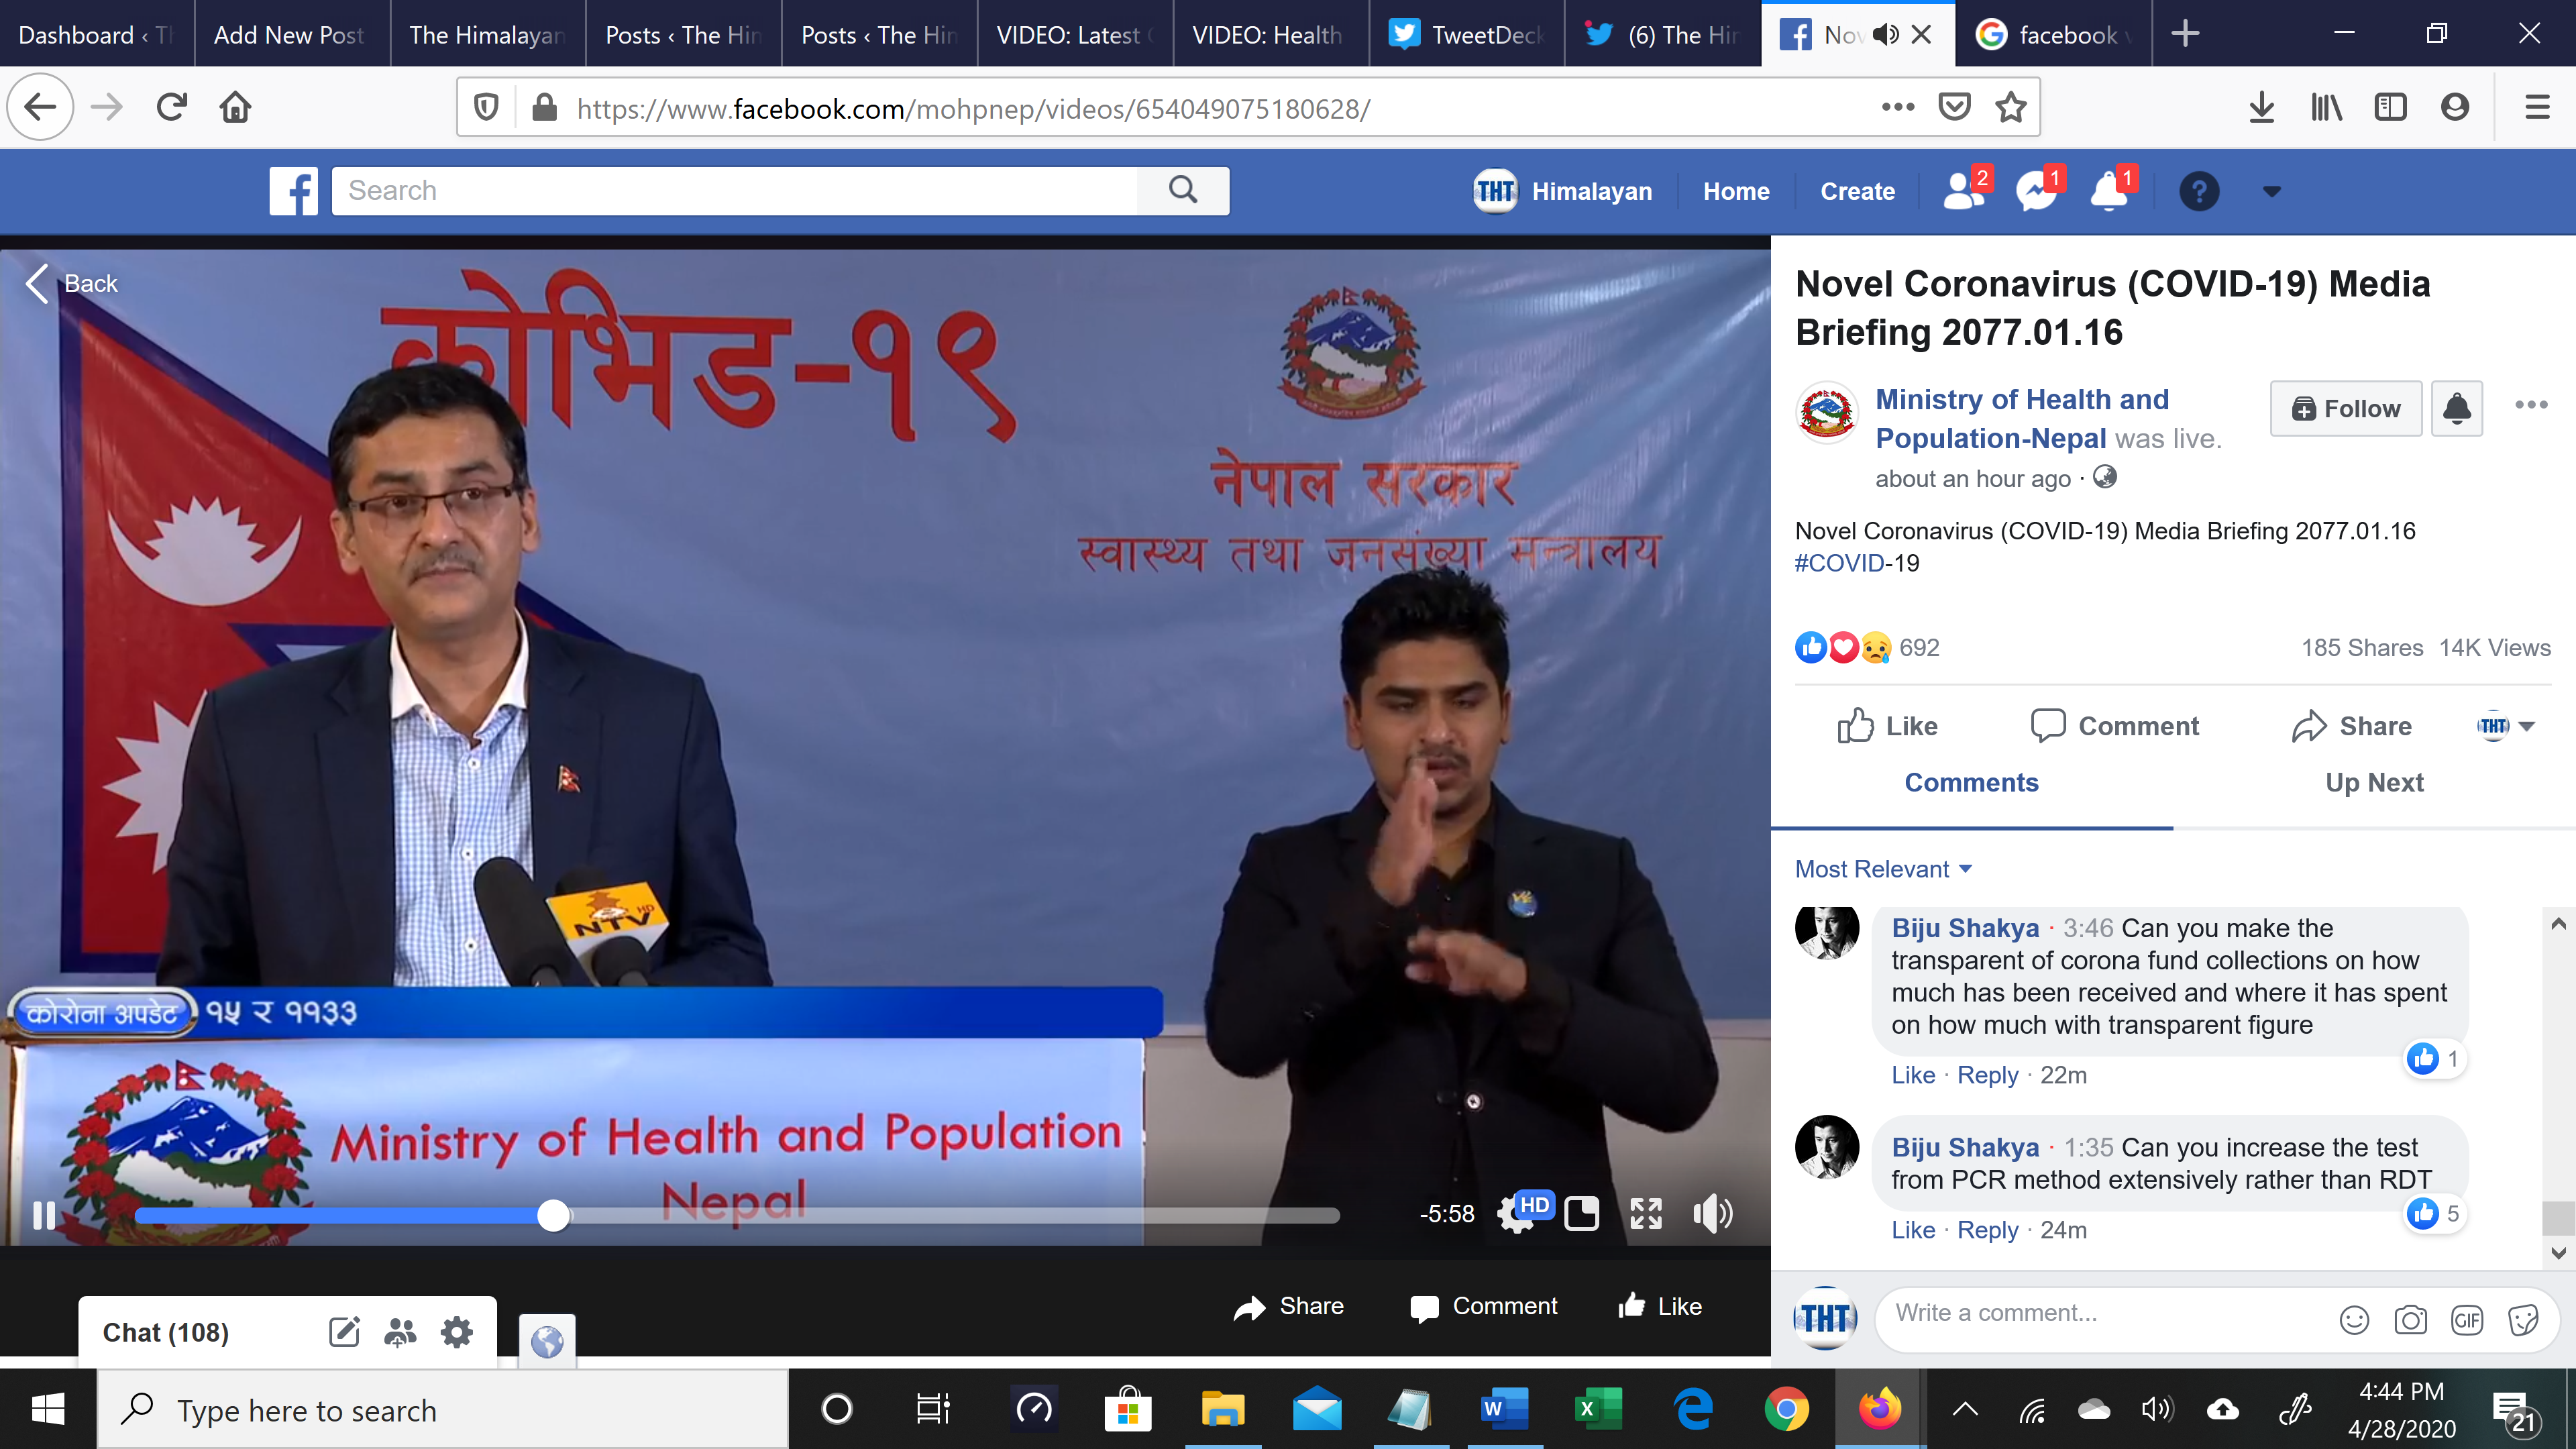 A screenshot of media briefing on COVID-19 by the Ministry of Health and Population (MoHP), on Tuesday, April 28, 2020.n